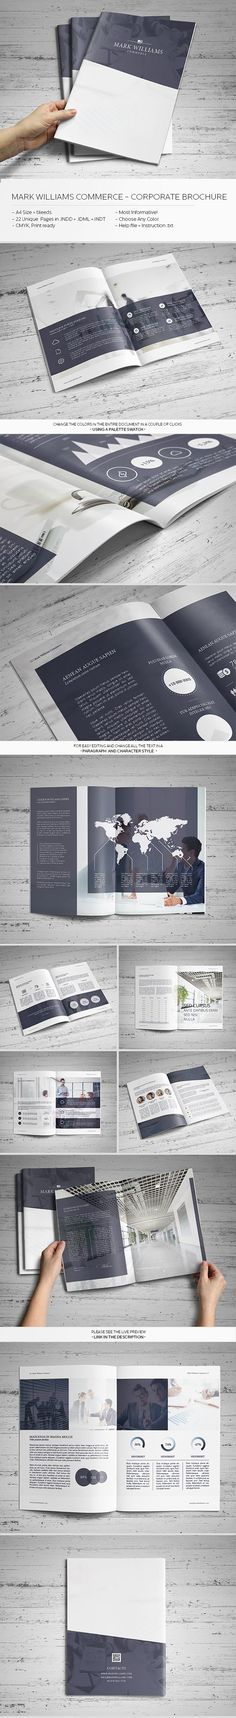 Layout / Corporate Brochure by Realstar